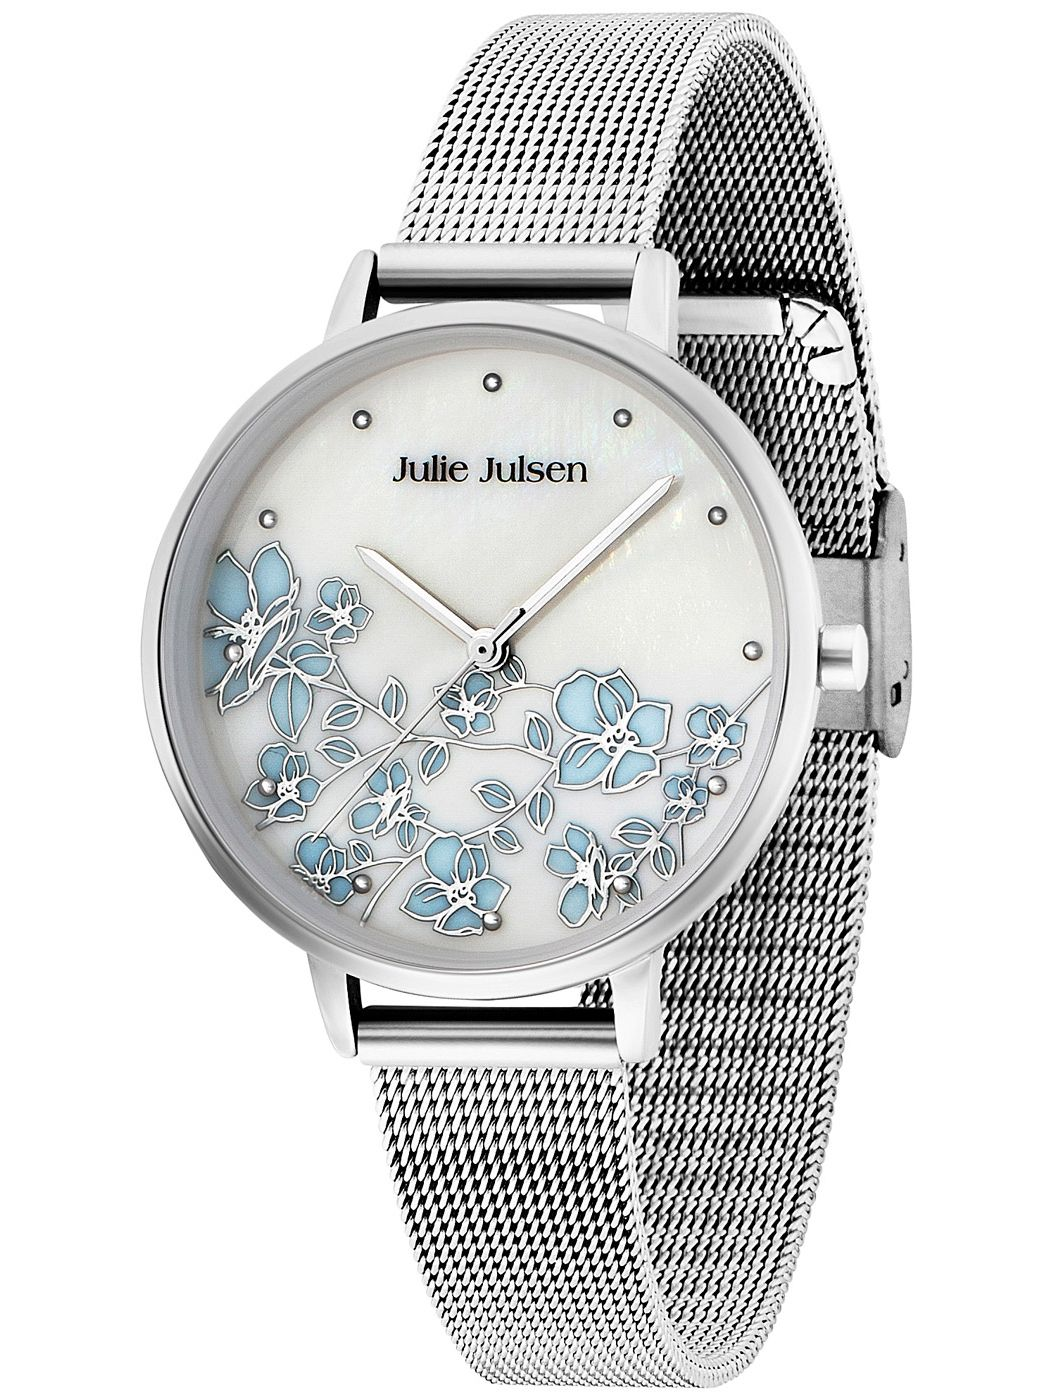 Julie Jjw80sme Ladies' Julsen Watch Blossom OvNn0wym8P